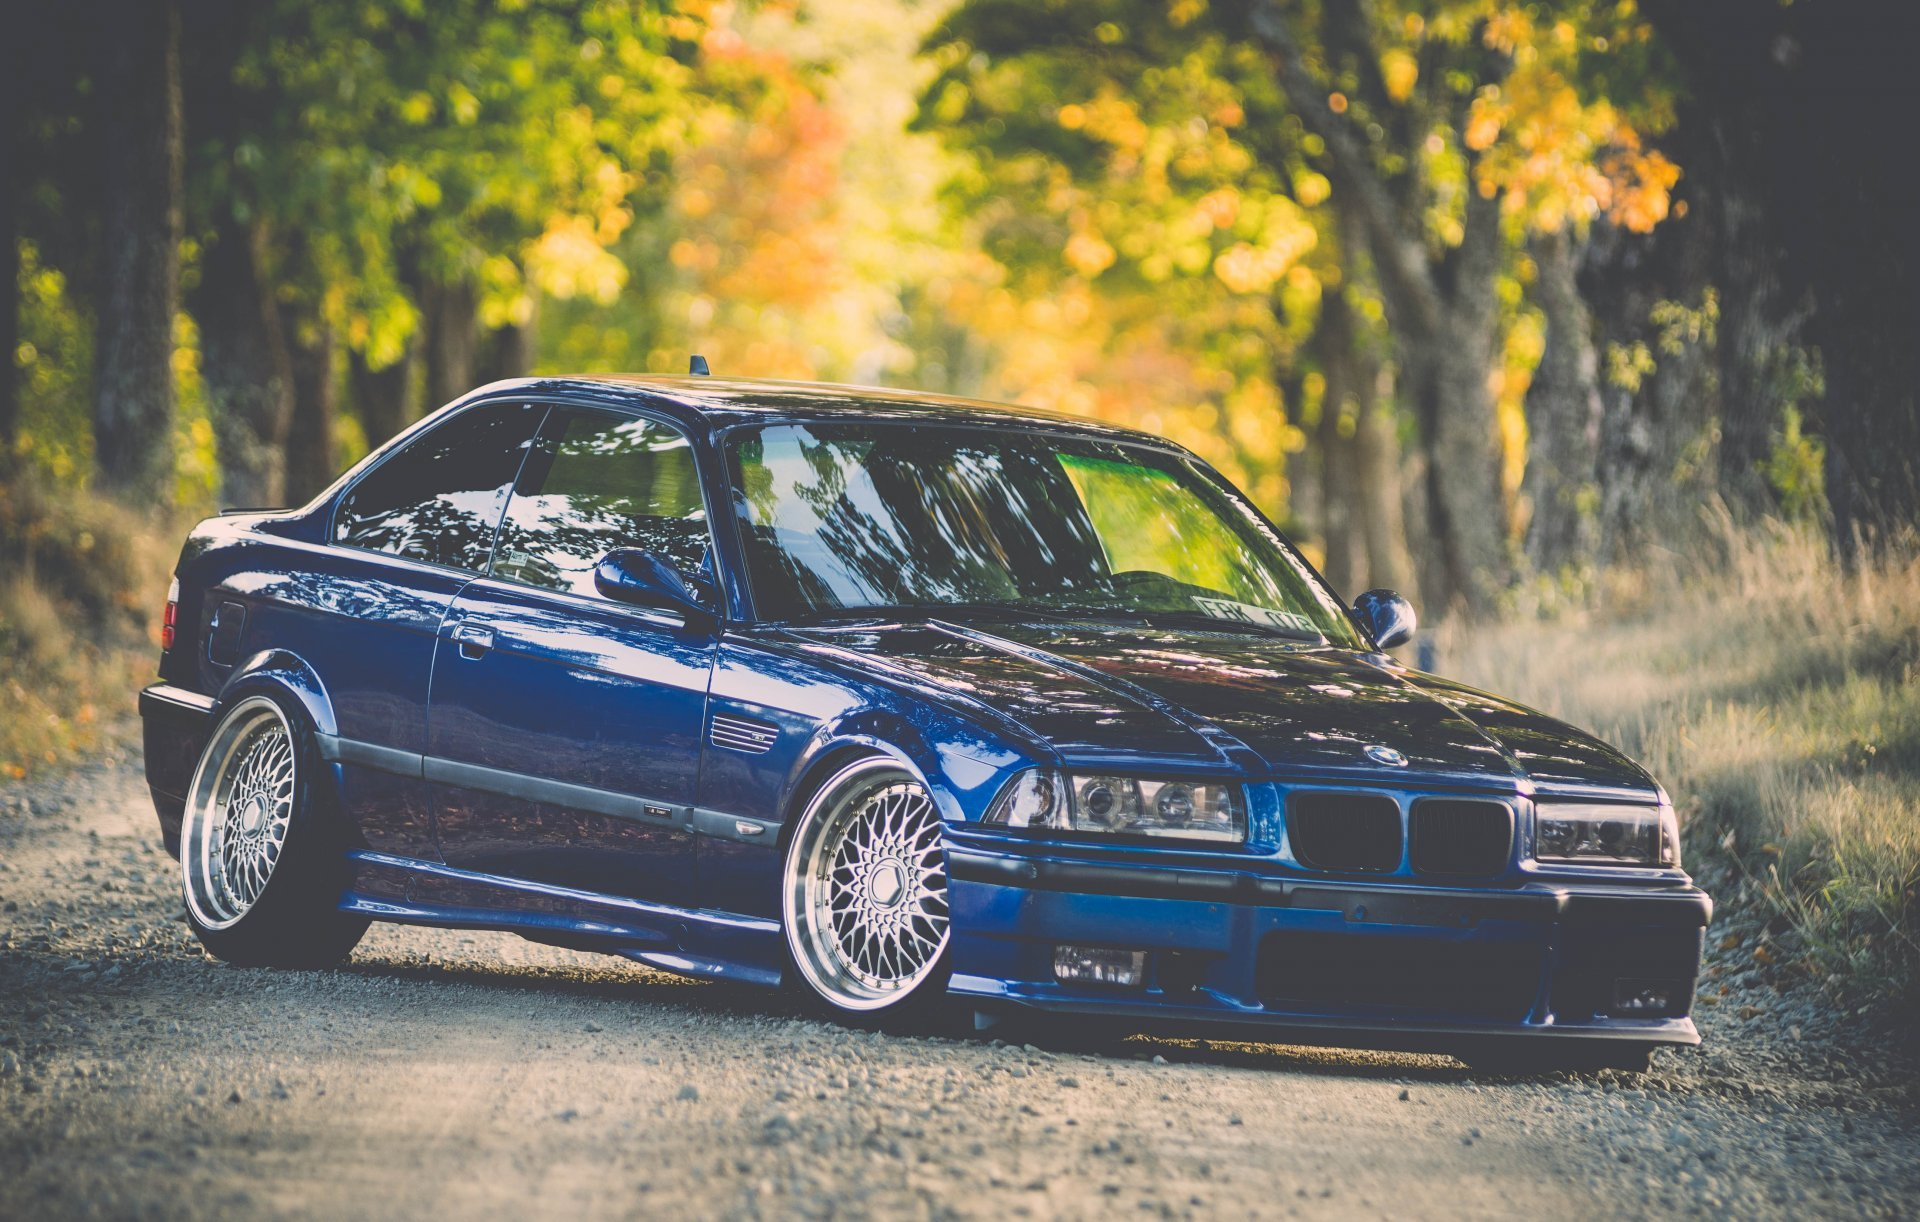 download bmw e36 m3 bmw tuning stance blue HD wallpaper 1920x1222